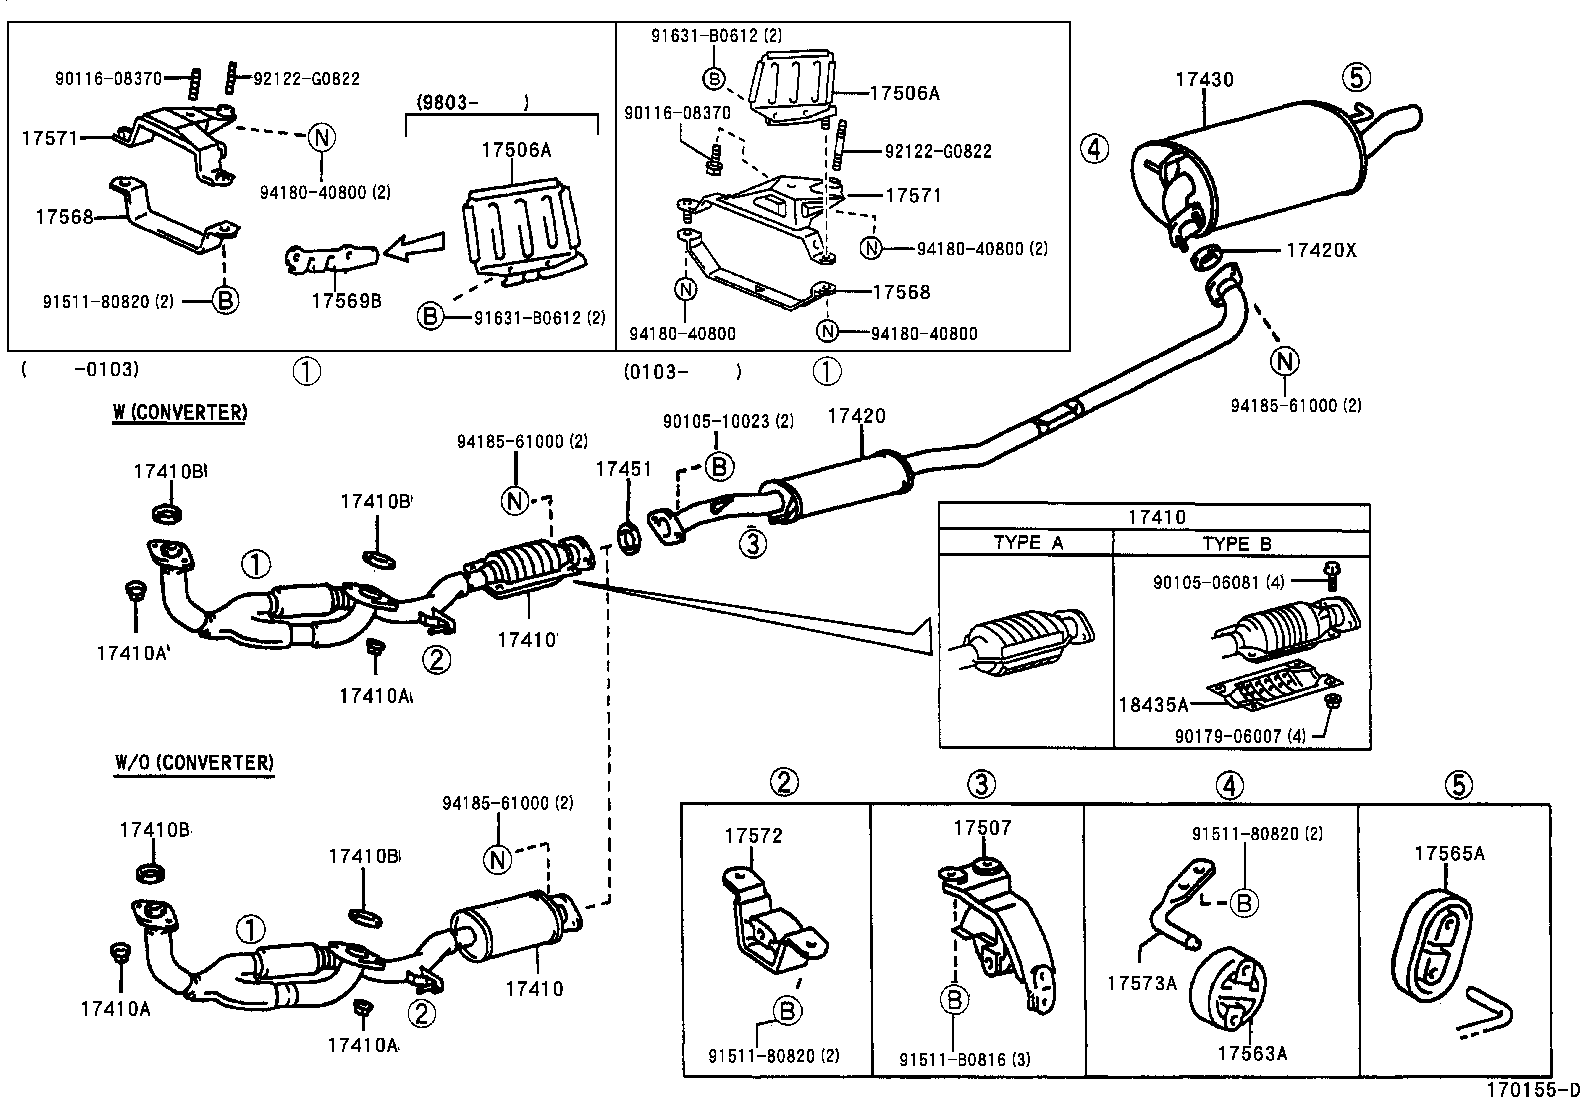 950441 1998 Rear Strut Mount Not Seating Properly furthermore 343657 Bulging Upper Radiator Hose further 1702 exhaust Pipe also 346327 97 Corolla Rear Engine Mount moreover Automotive blueprints. on 1994 toyota celica